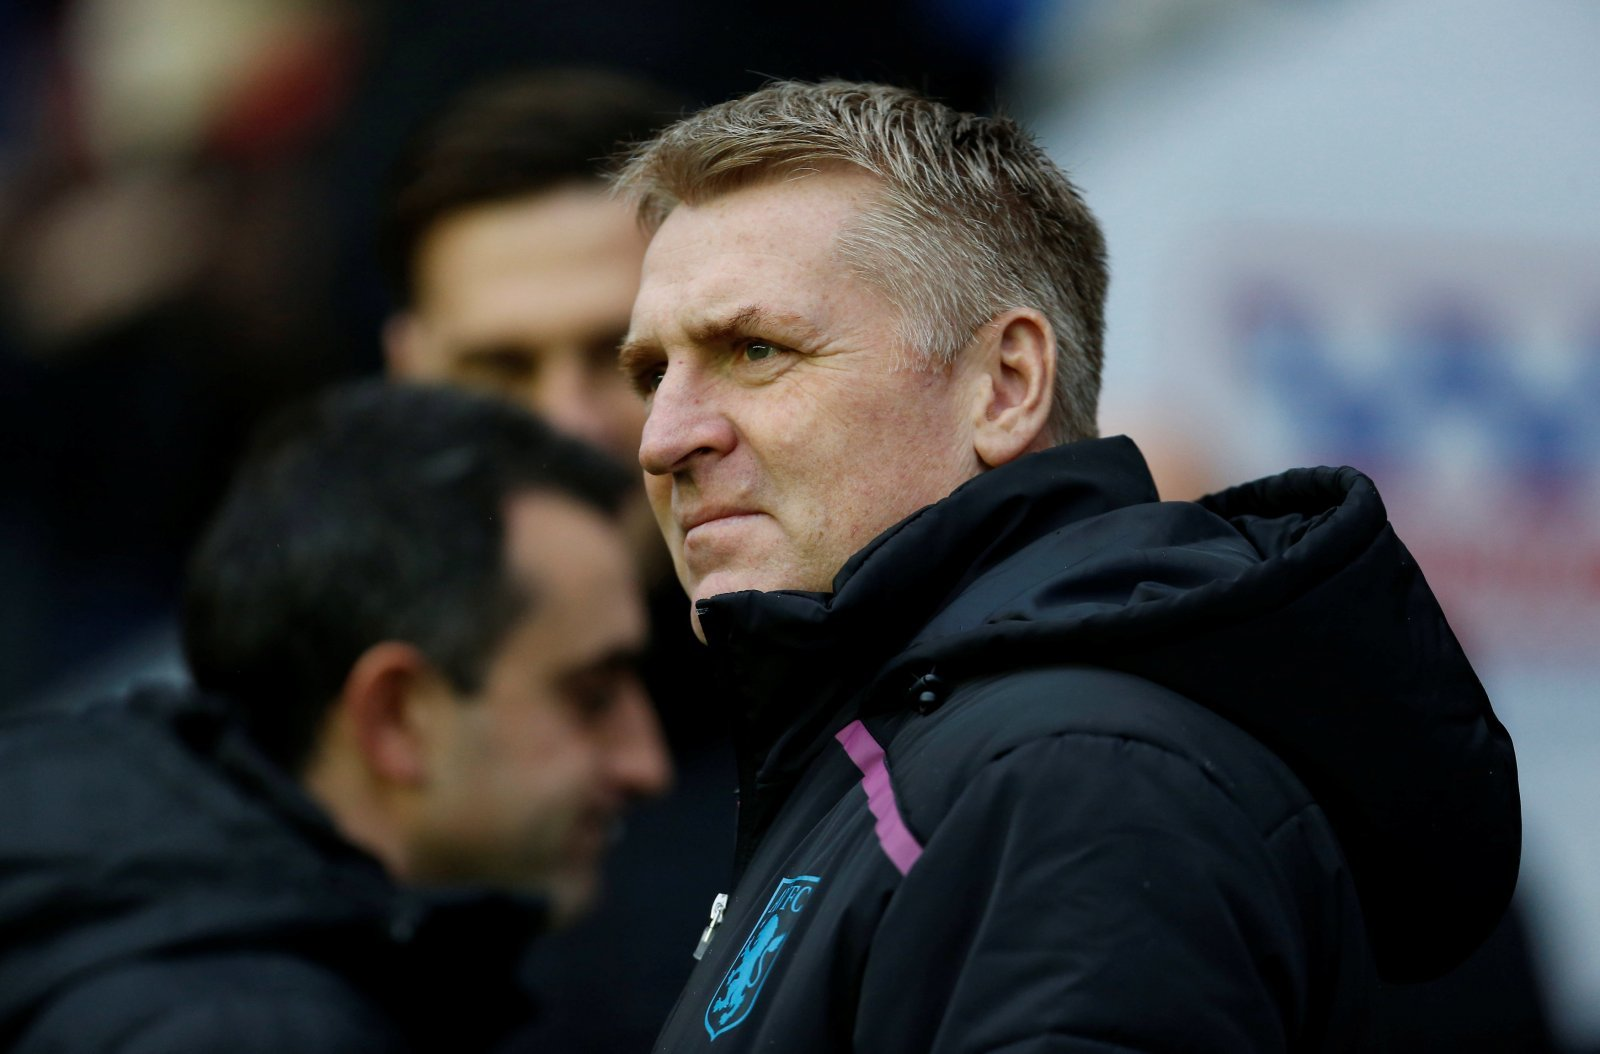 Opinion: Aston Villa to reclaim Premier League place based on current form